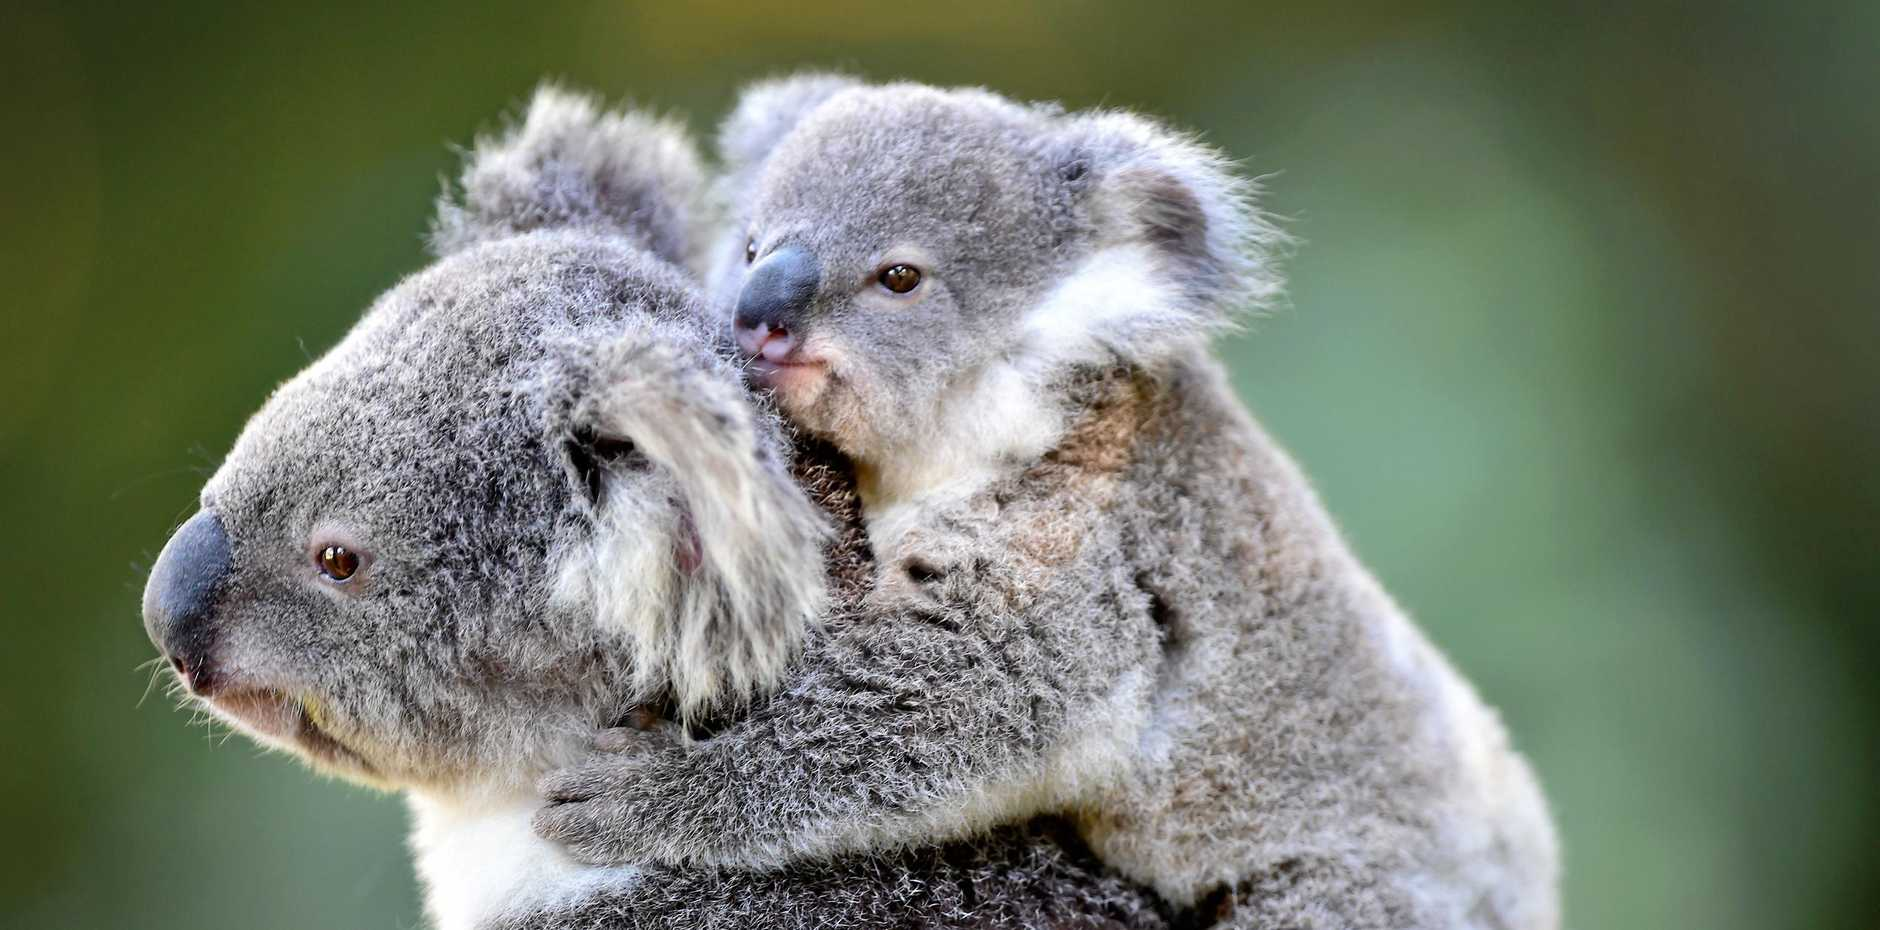 The koala population has reduced by around 26% in the last 20 years. The NSW Government has released the unprecedented Koala Strategy in a bid to save the vulnerable species.